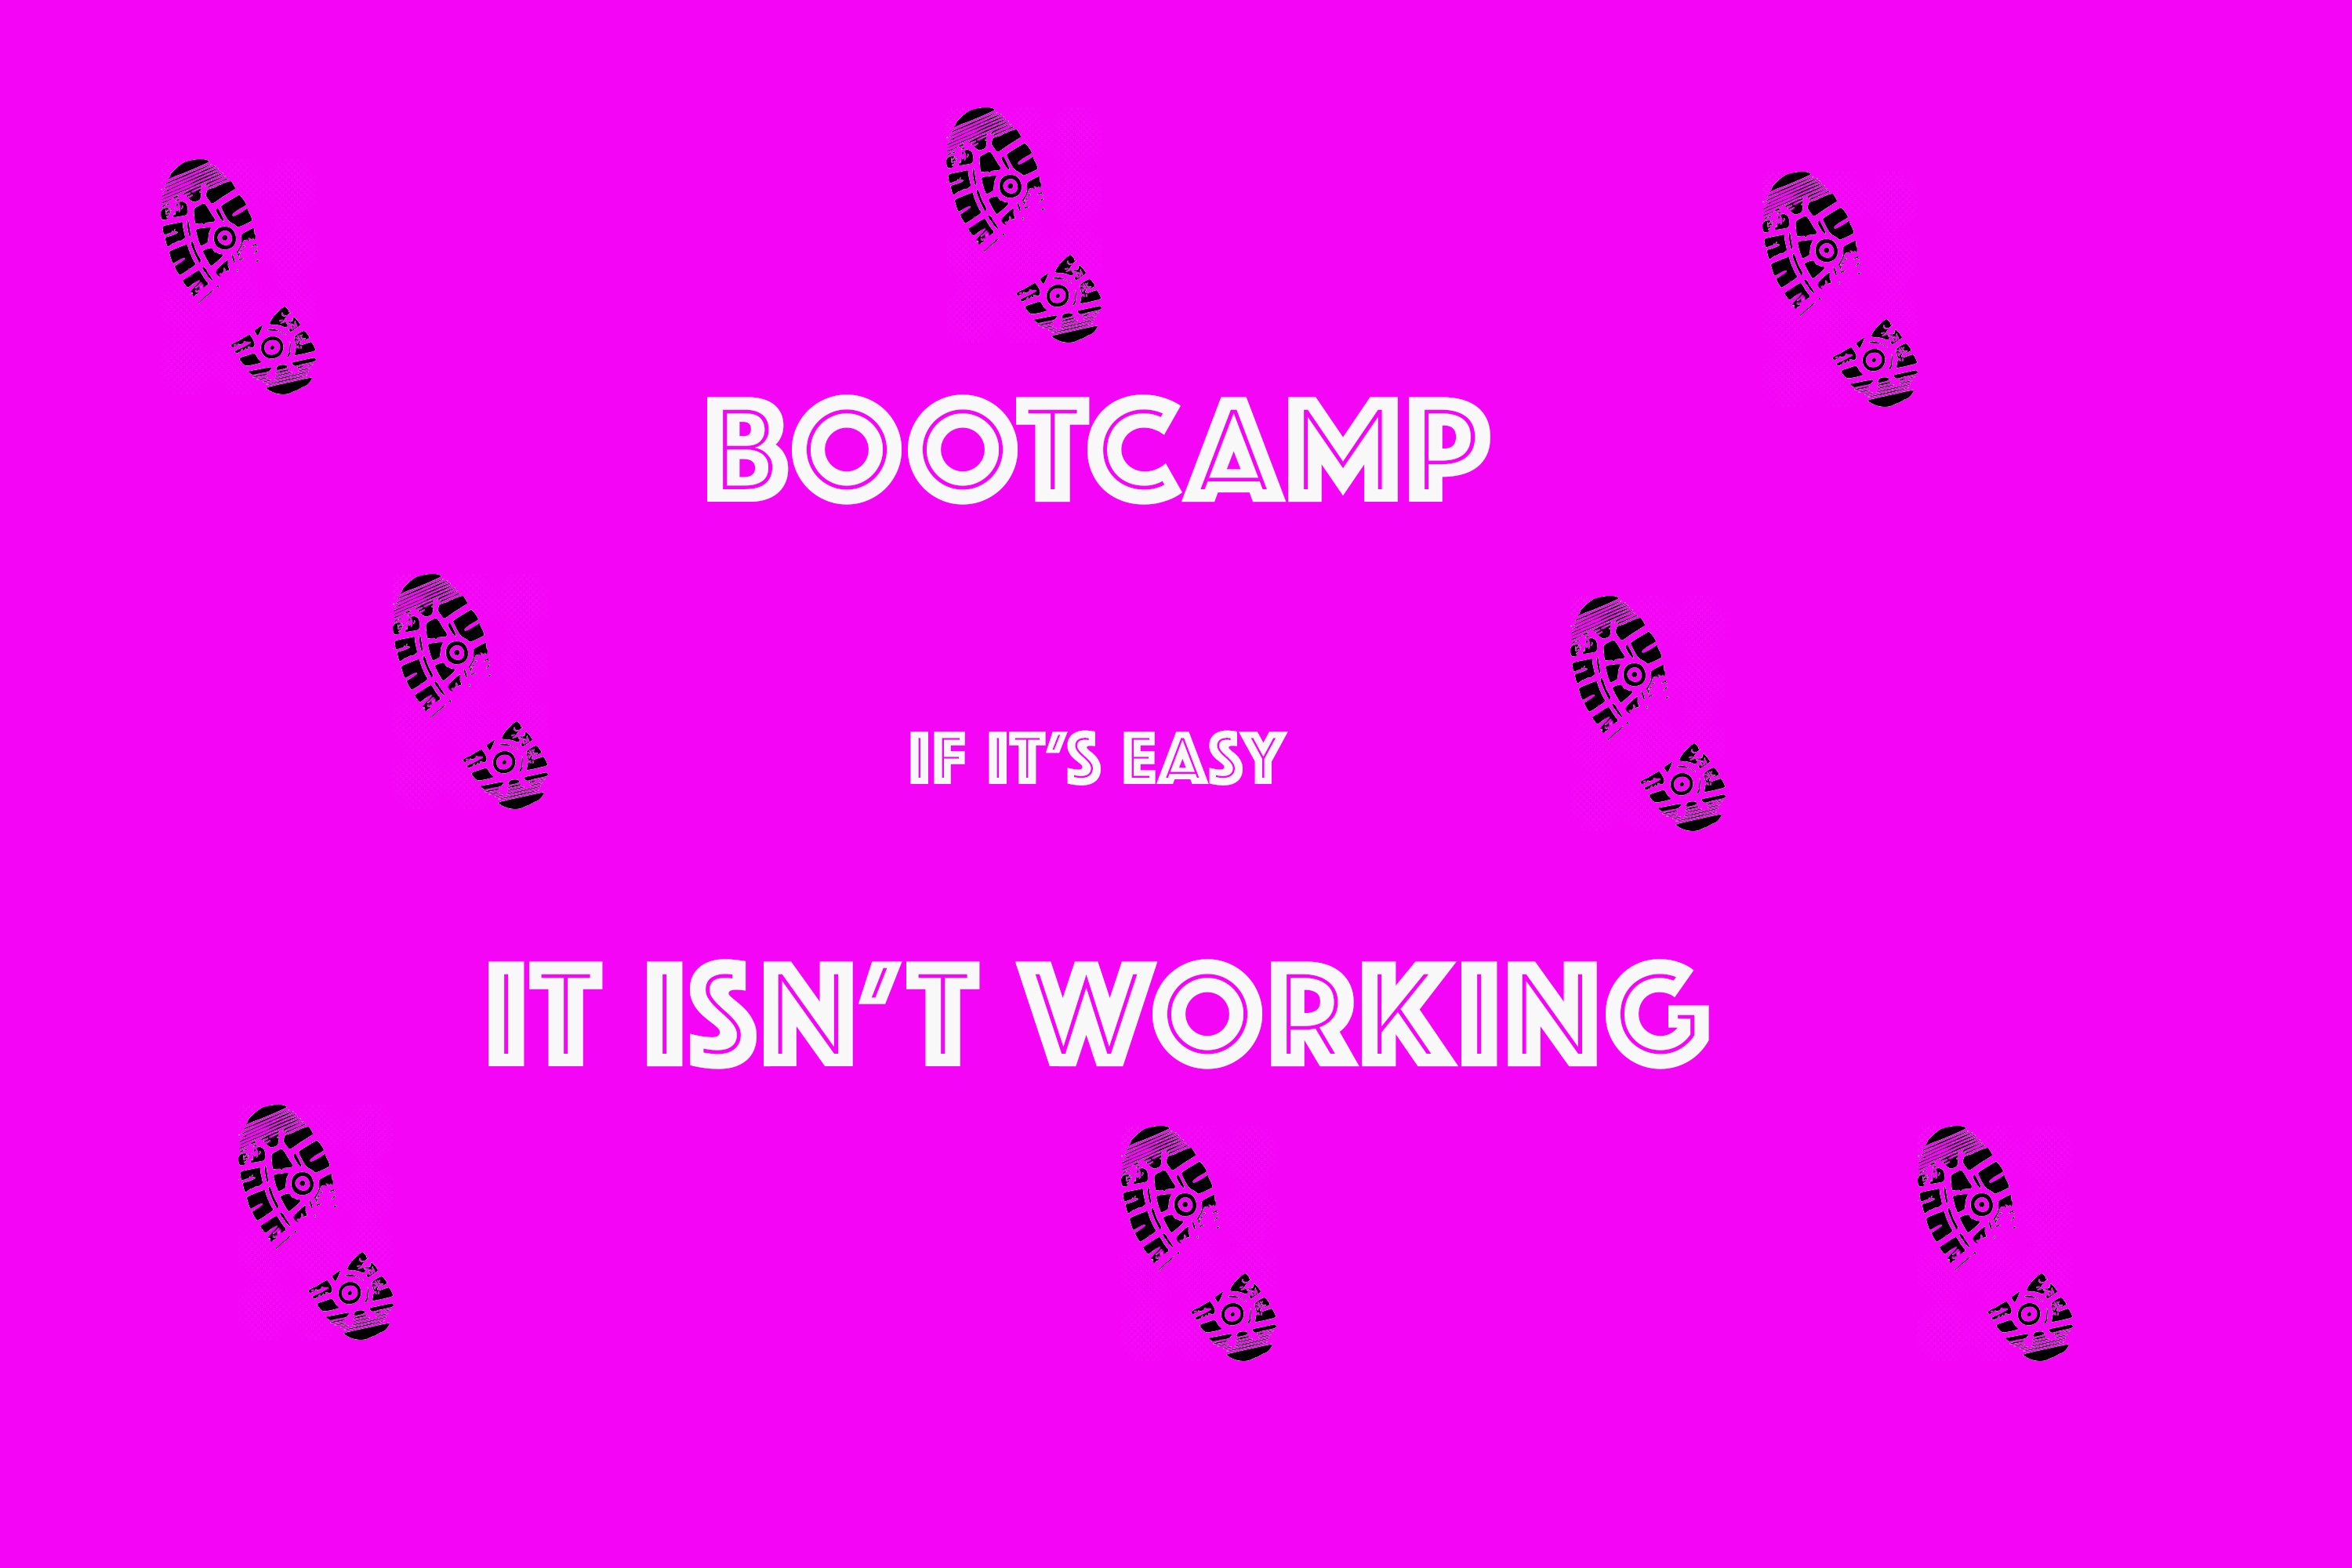 Cycling, Phone Calls and Bootcamps